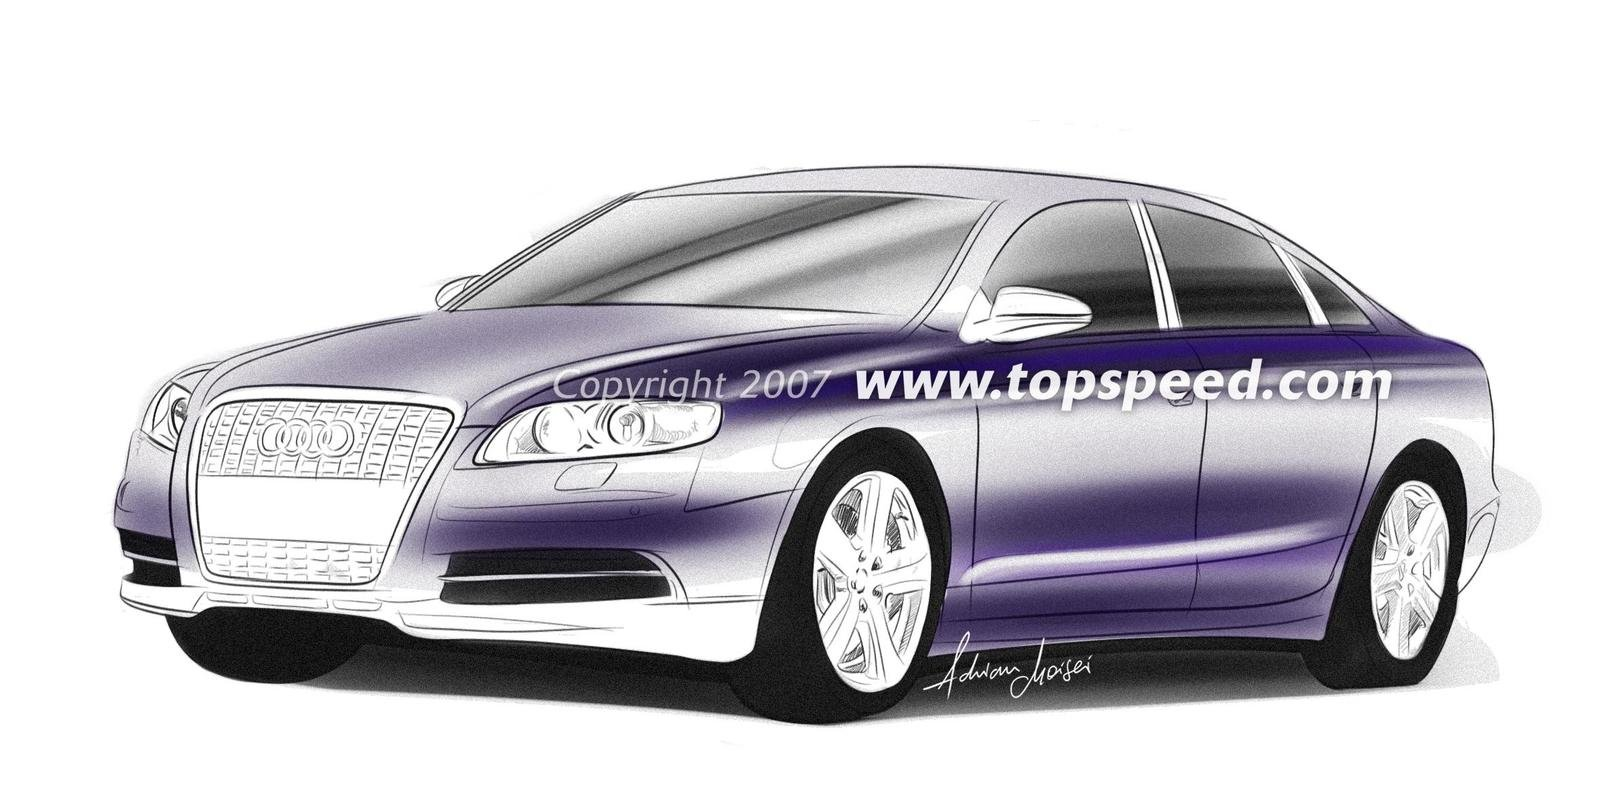 2010 audi a8 review top speed. Black Bedroom Furniture Sets. Home Design Ideas